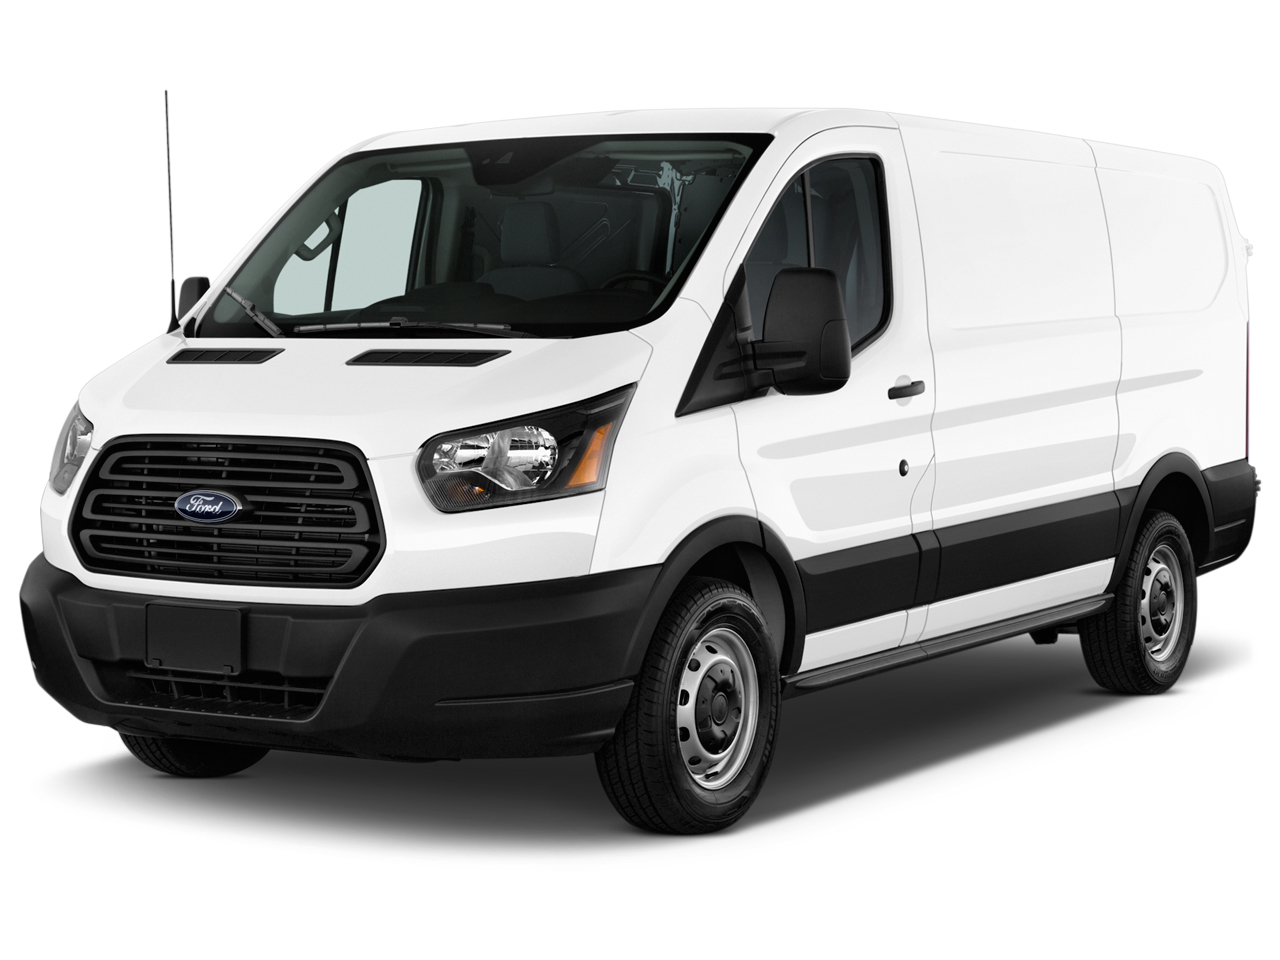 2016 ford transit cargo van review ratings specs prices and photos the car connection. Black Bedroom Furniture Sets. Home Design Ideas